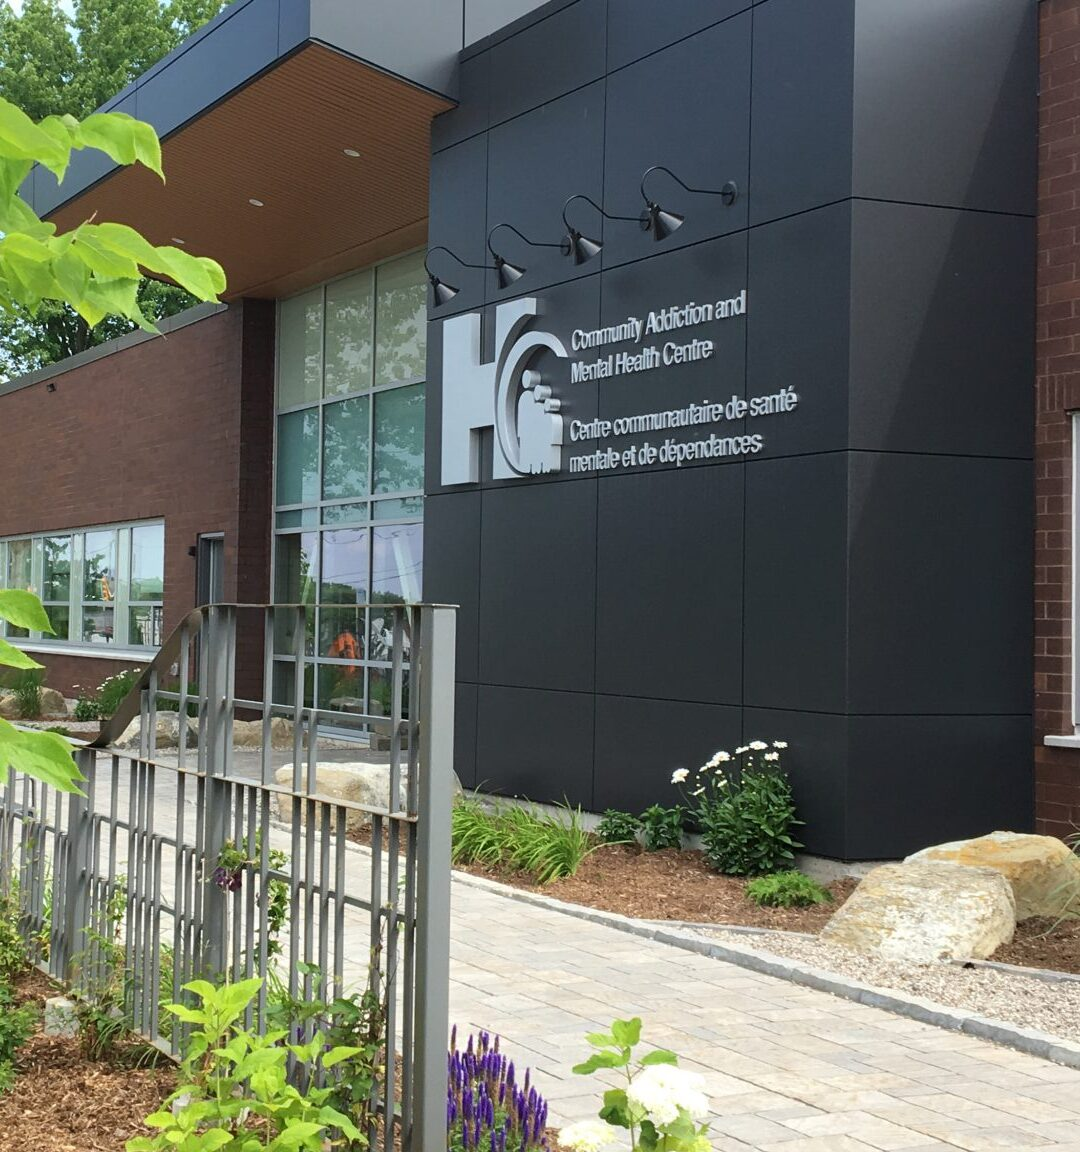 CCH Community Addictions and Mental Health Centre